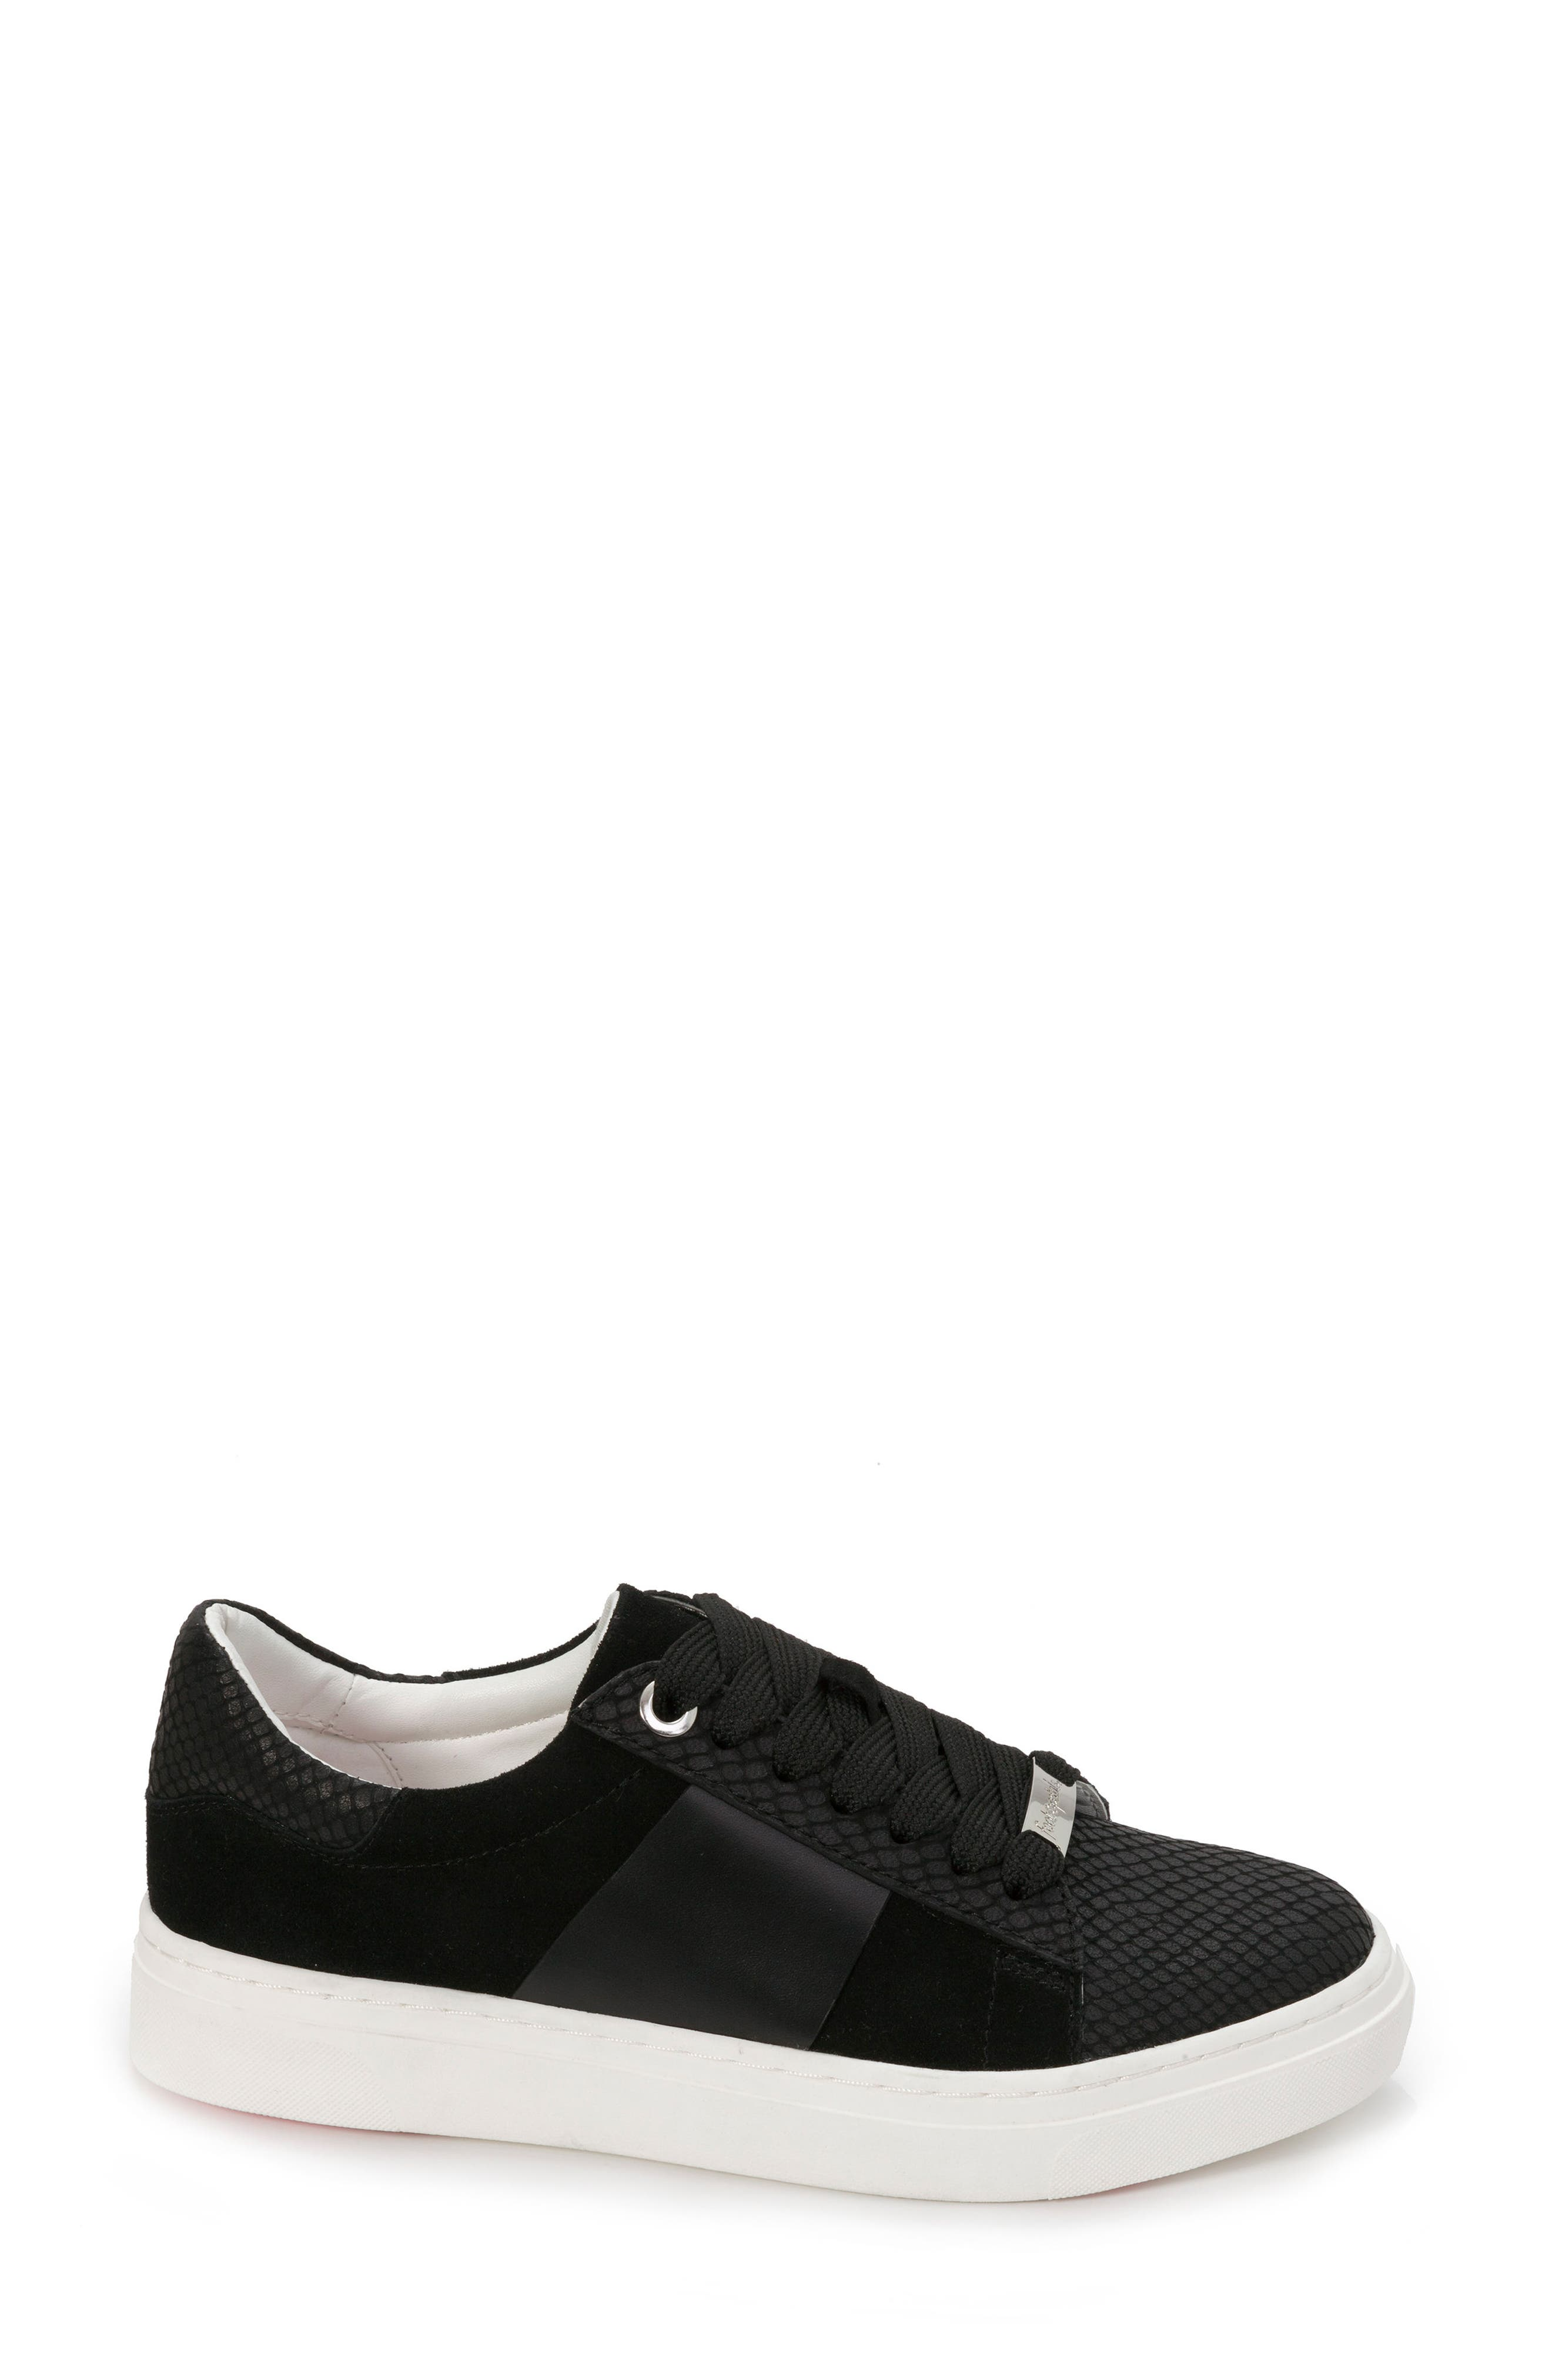 Fallon Sneaker,                             Alternate thumbnail 3, color,                             BLACK SUEDE